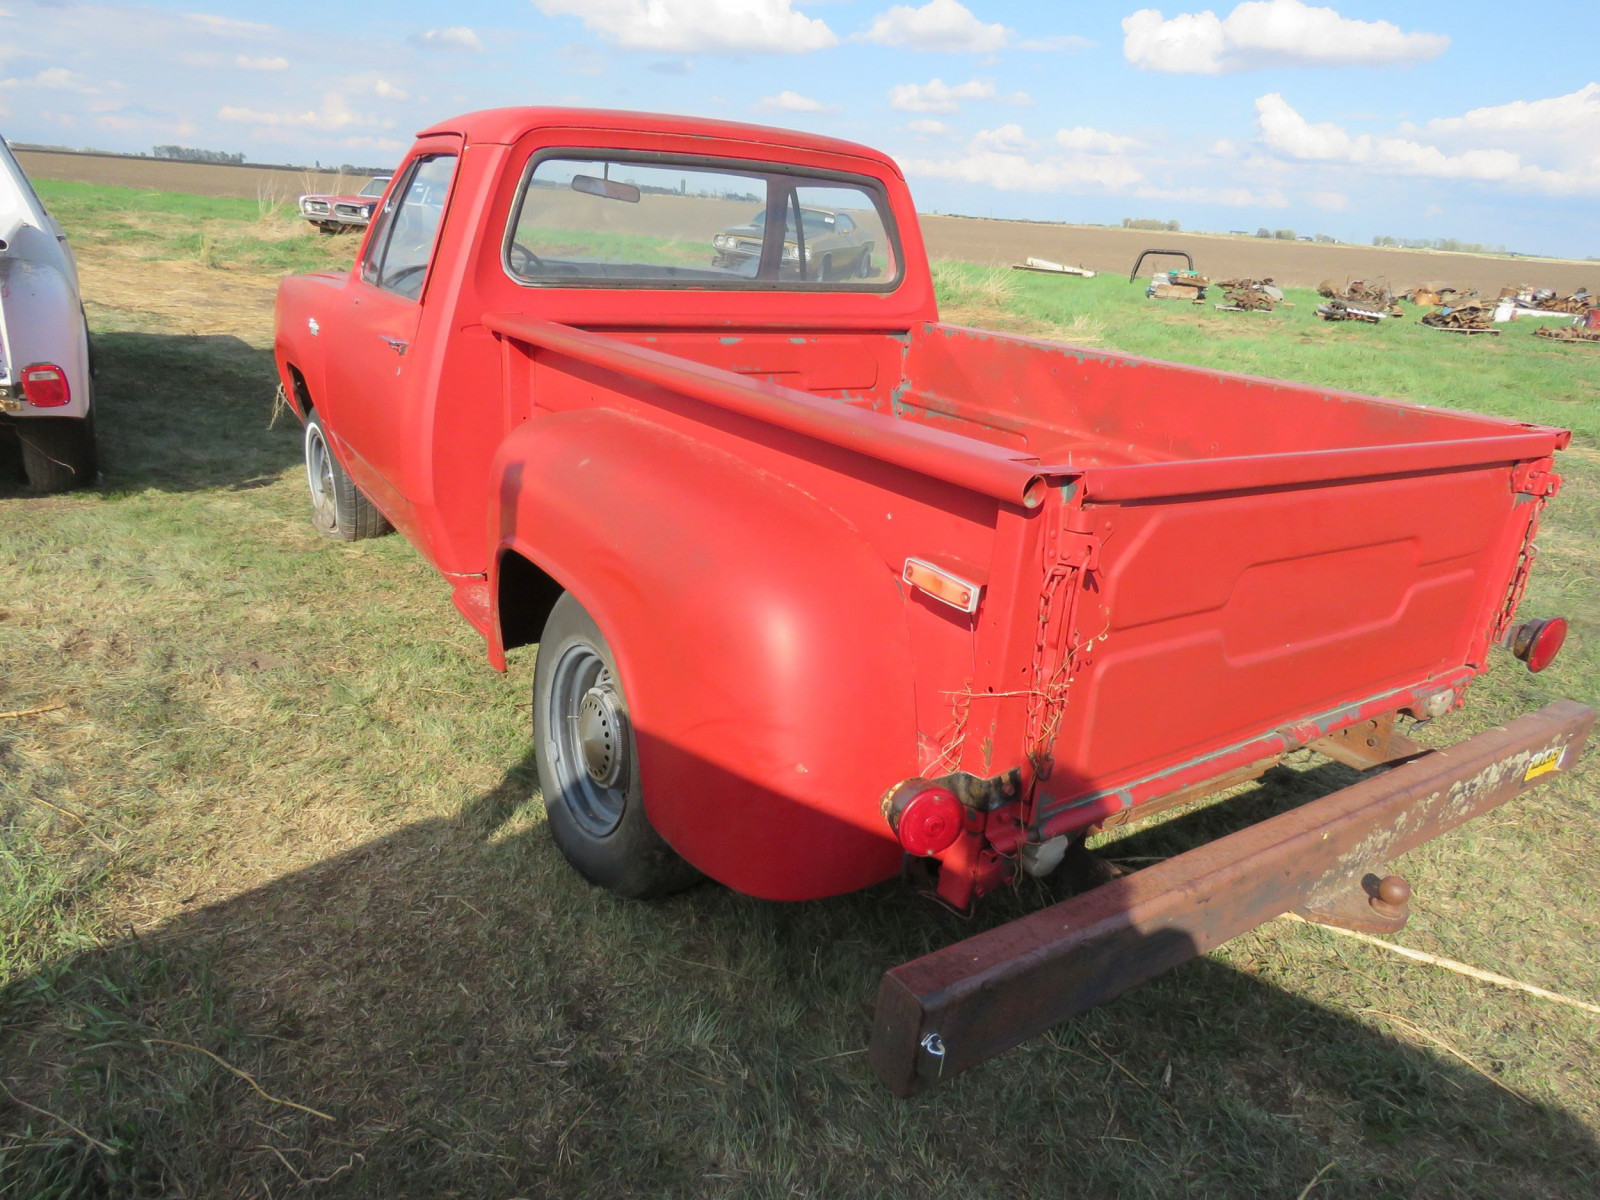 1975 Dodge D100 Pickup - Image 5